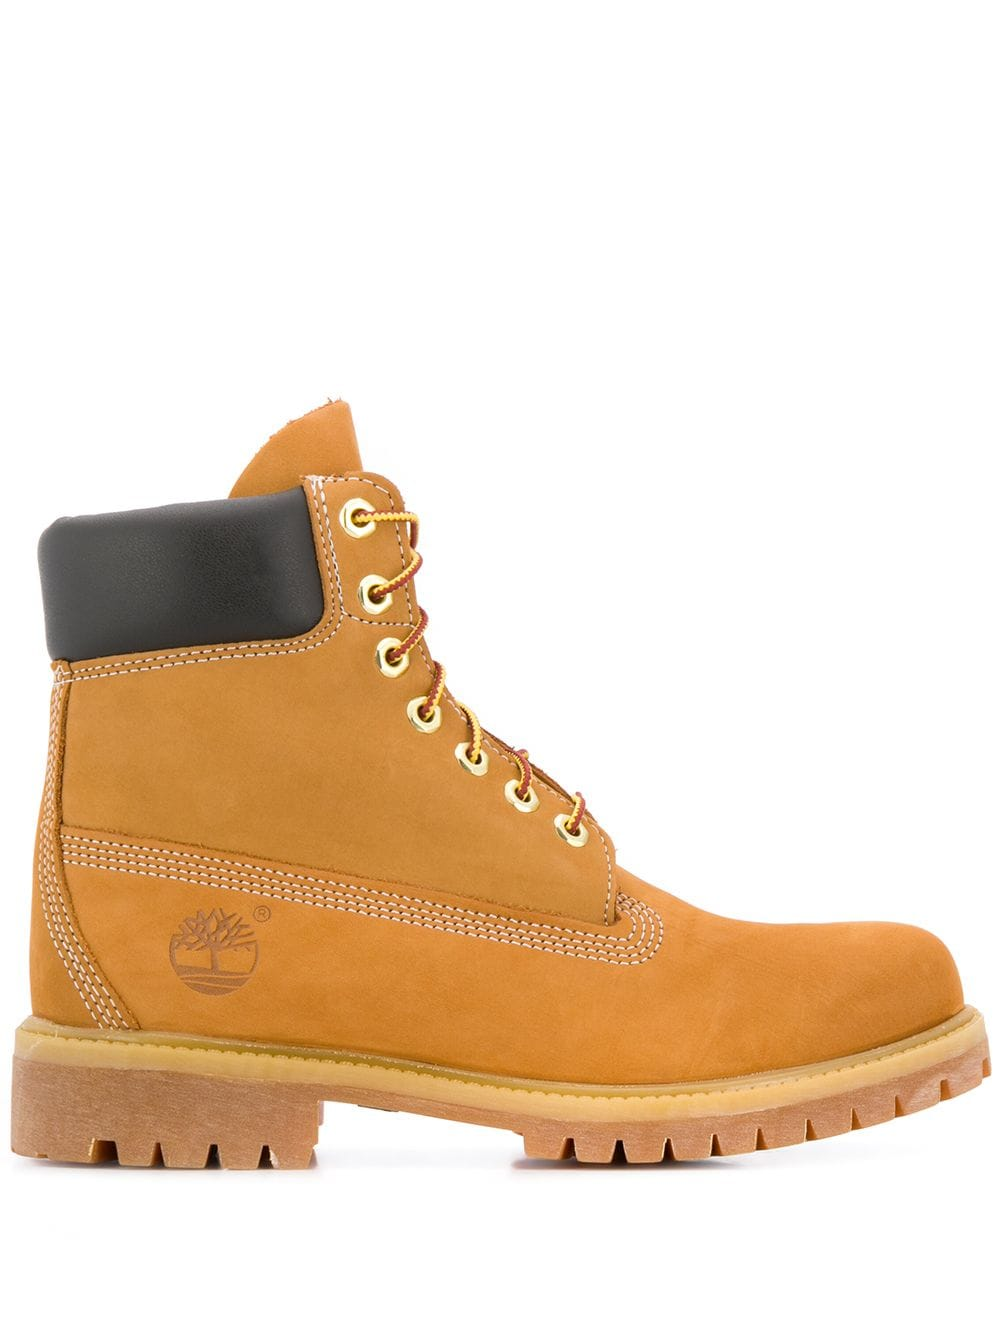 Men's Timberland Boots Brown